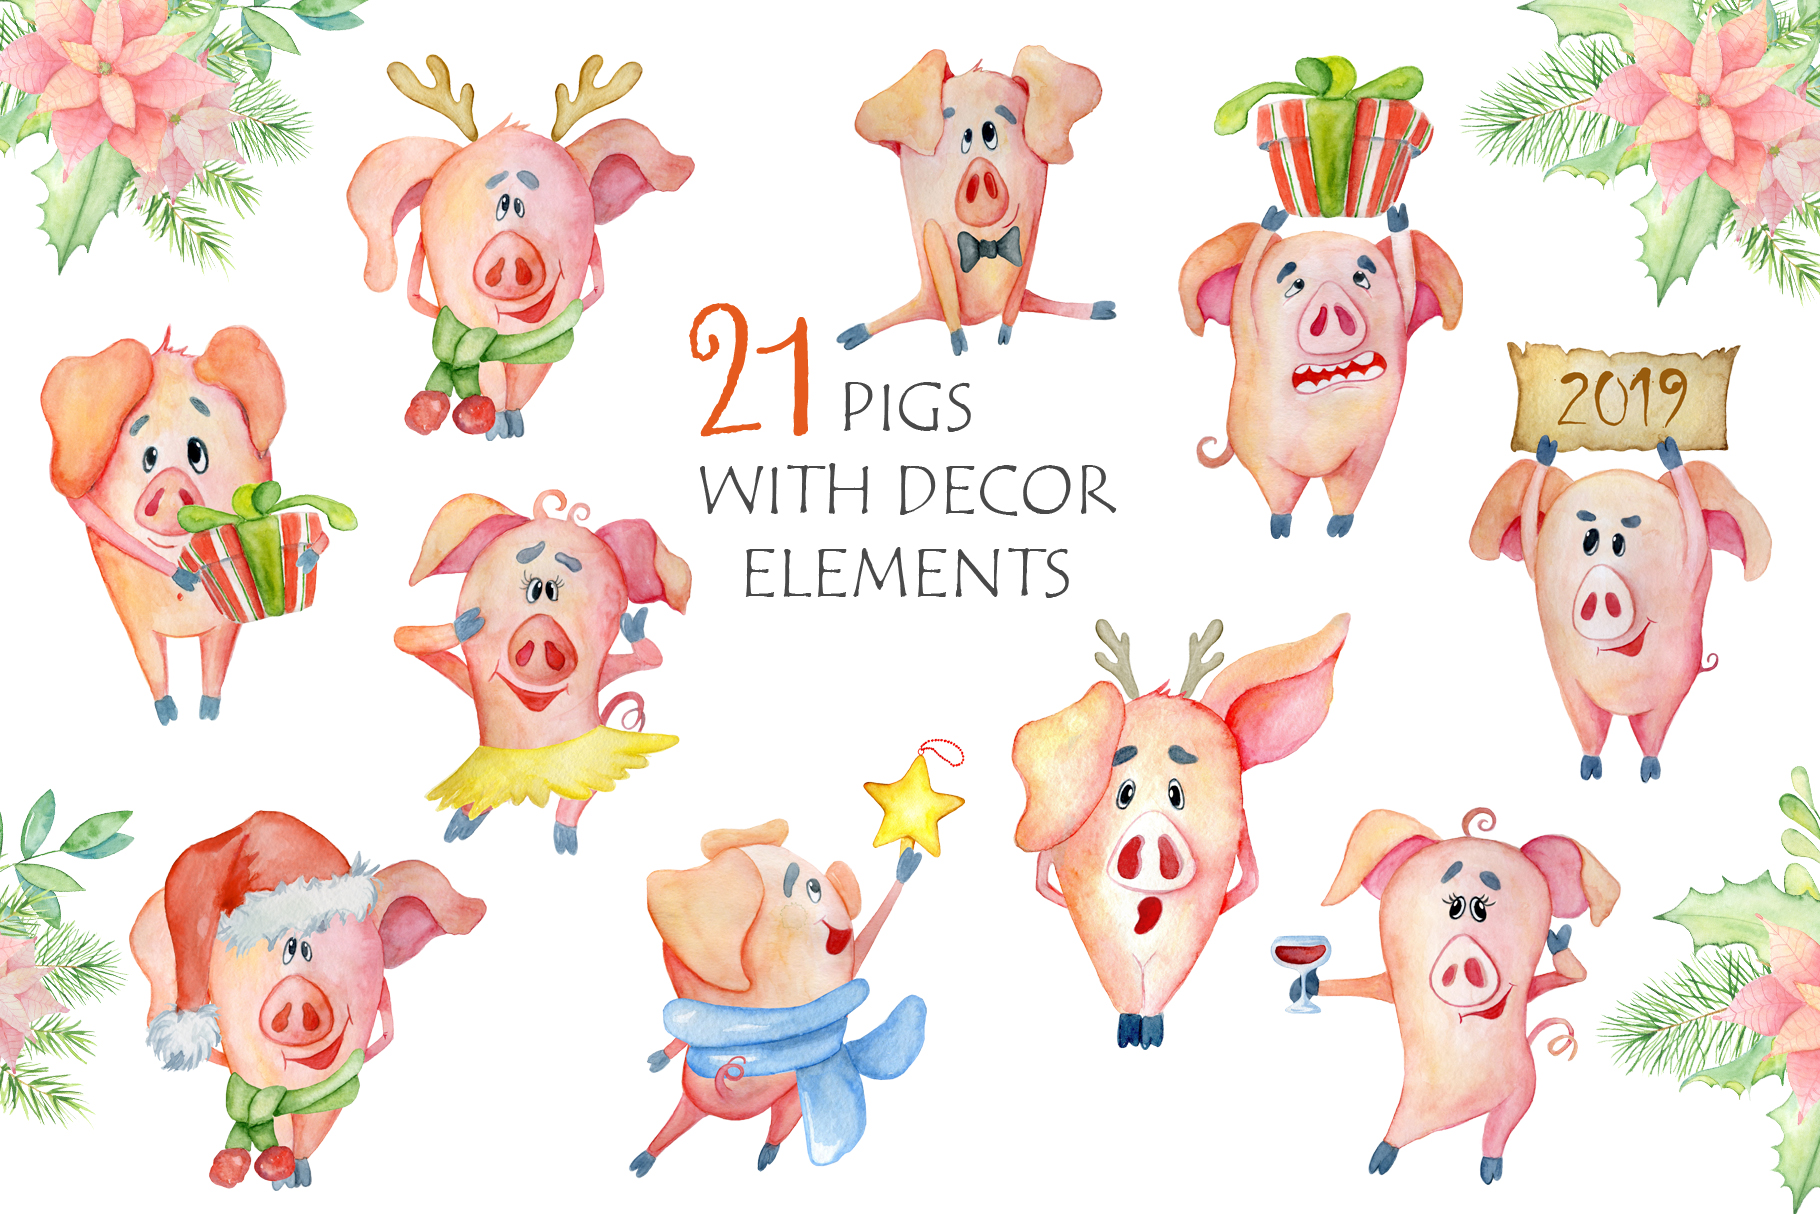 Cute Christmas pigs with decor elements for New Year 2019 example image 5